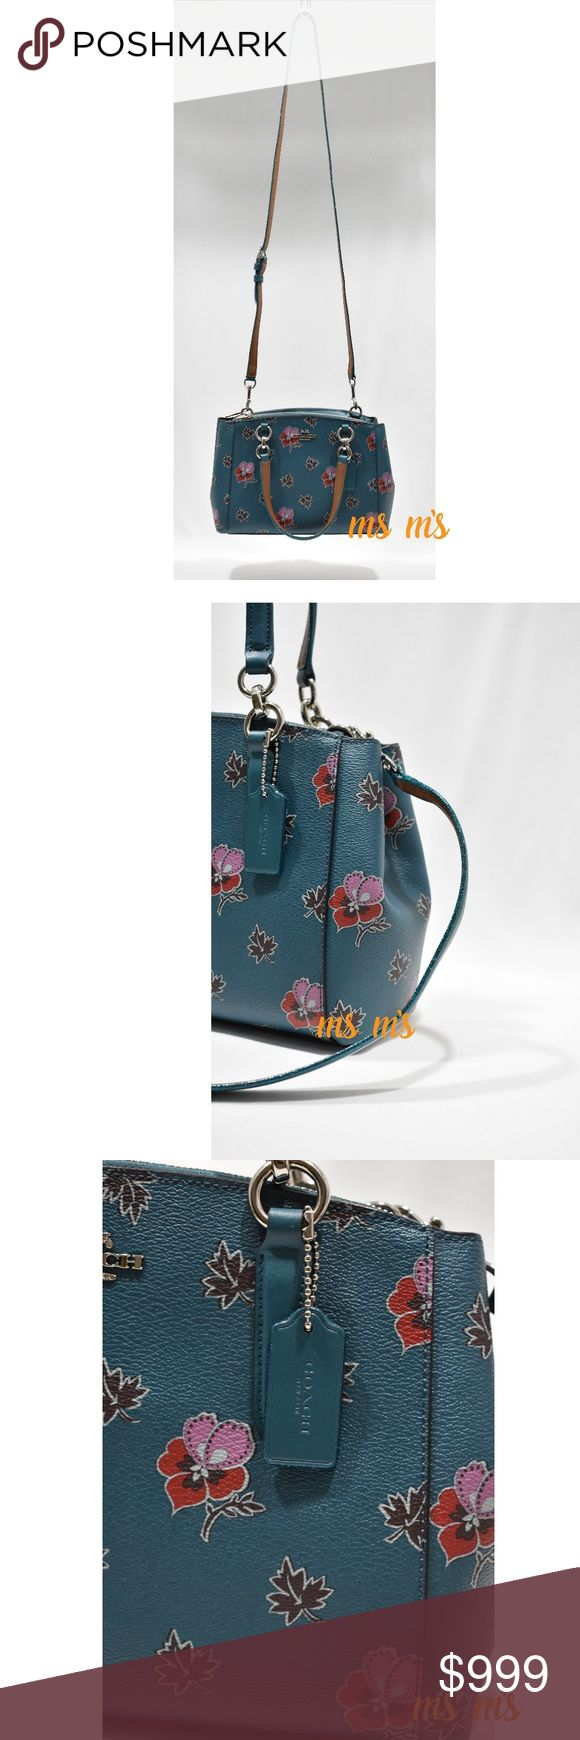 "NWT coach satchel crossbody COLOR:  SILVER/DARK TEAL( blue) Printed coated canvas Inside snap and multifunction pockets Snap closure, fabric lining Side zip compartments Handles with 5 3/4"" drop Detachable strap with 23 1/2"" drop for shoulder or crossbody wear 10 1/2"" (L) x 7"" (H) x 4"" (W) Coach Bags Satchels"